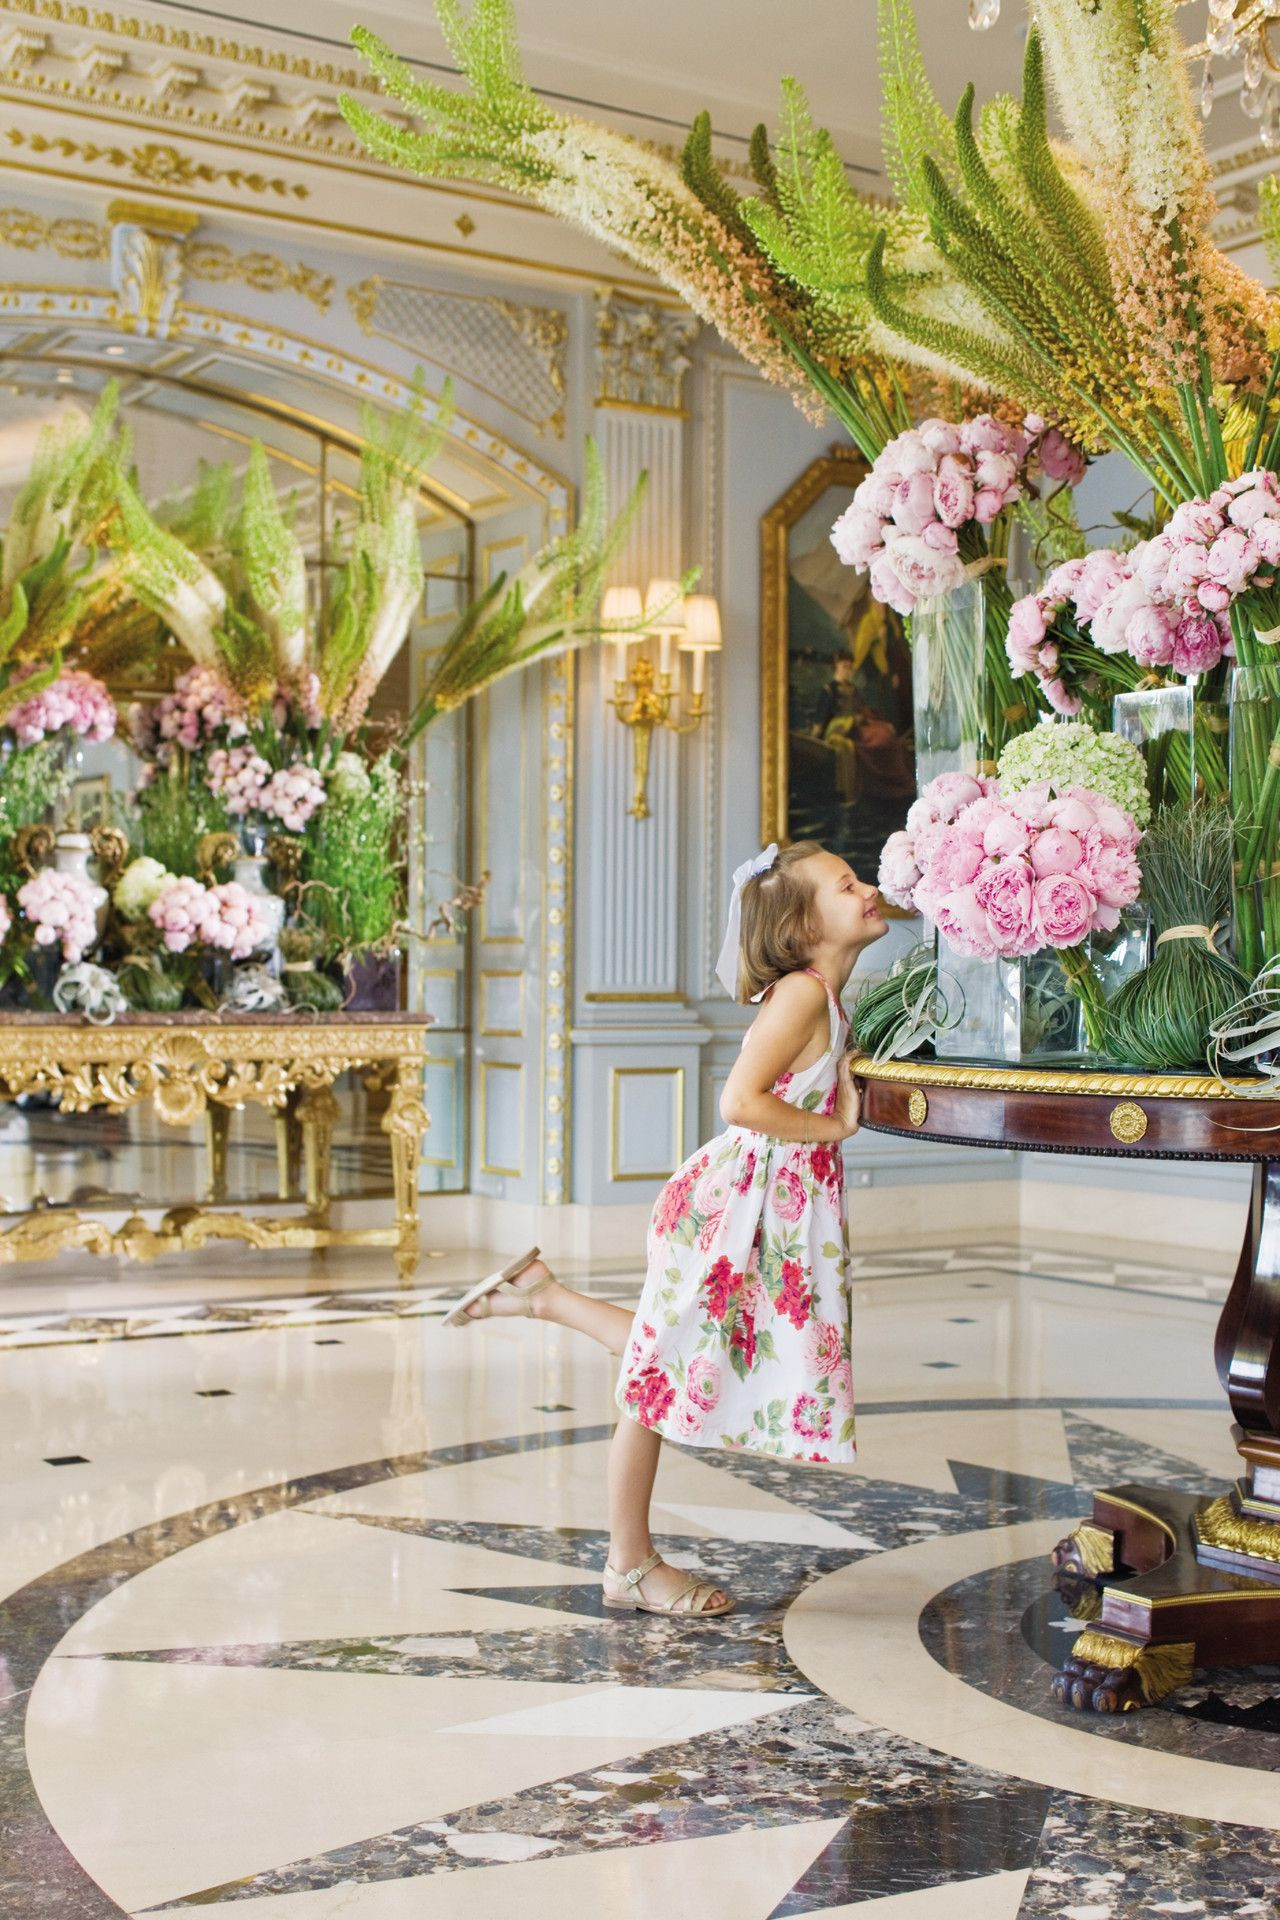 christian tortu vase of stopping to smell the roses or are those peonies at four seasons pertaining to stopping to smell the roses or are those peonies at four seasons hotel geneva